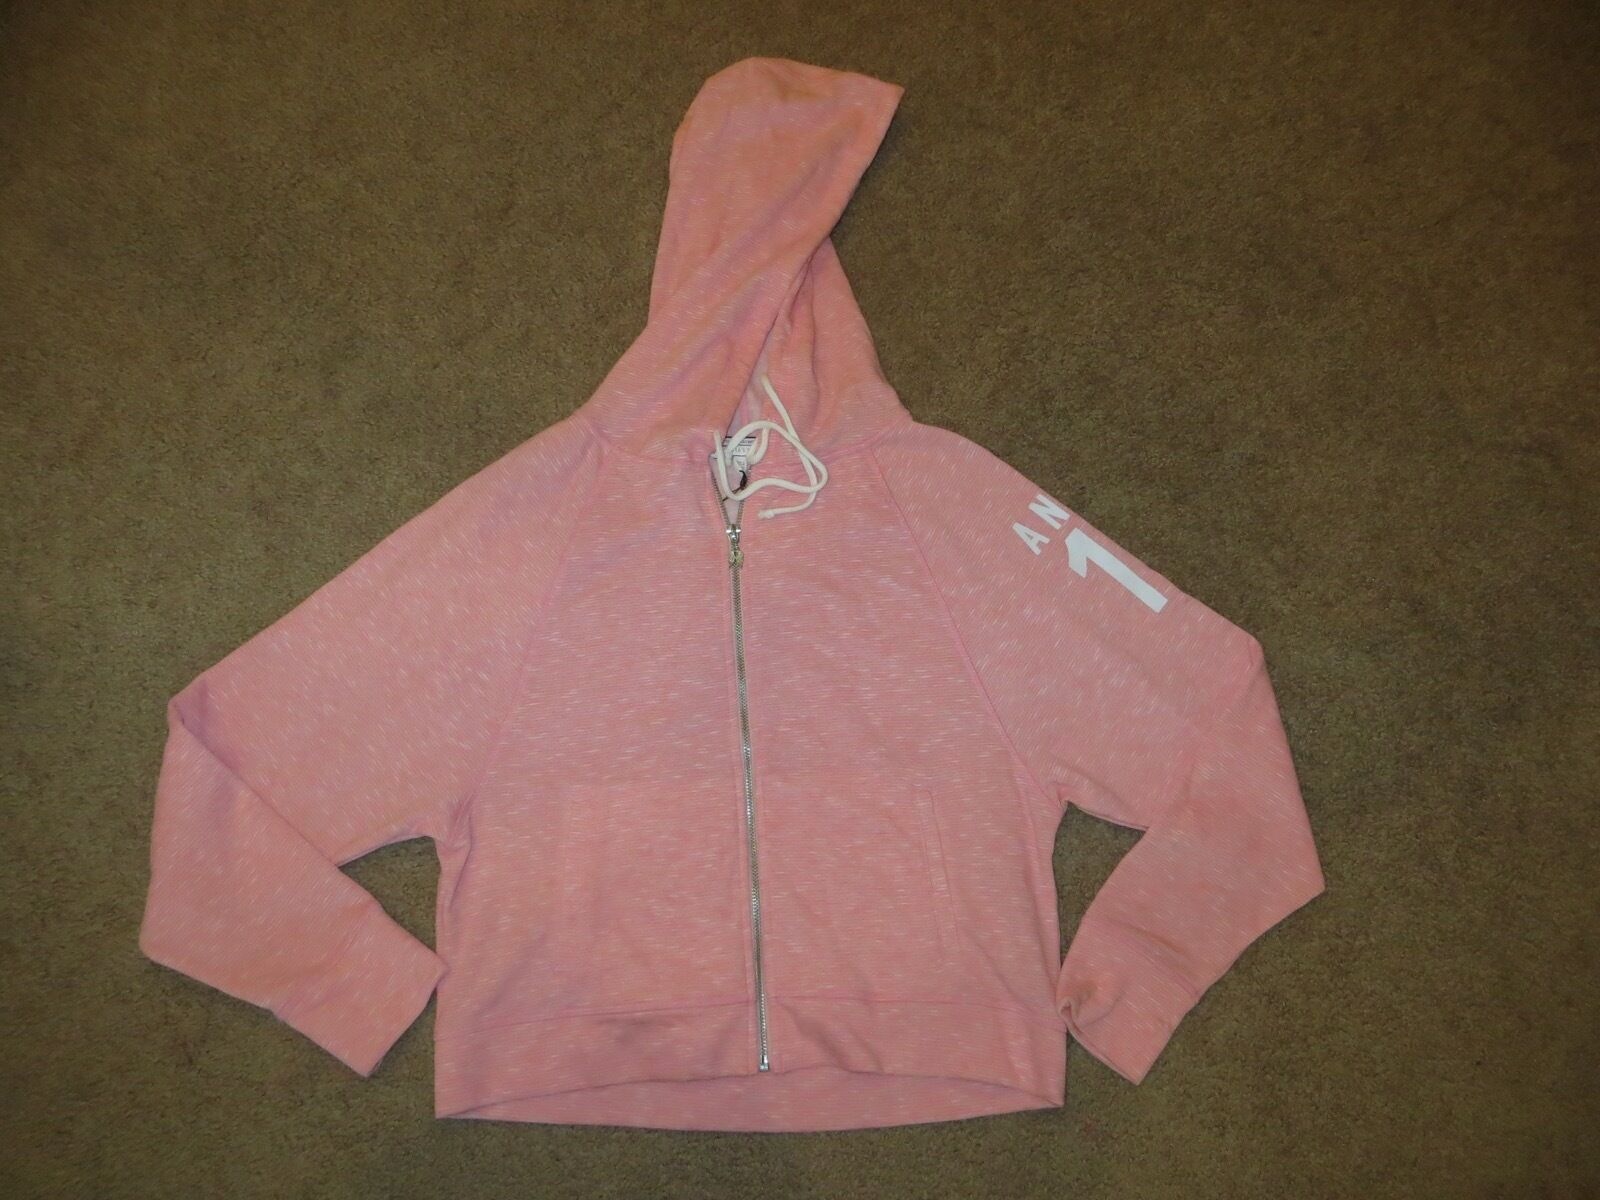 VICTORIA'S SECRET SUPERMODEL ESSENTIALS PINK STRIPE ANGEL 10 CROP HOODIE NWT S